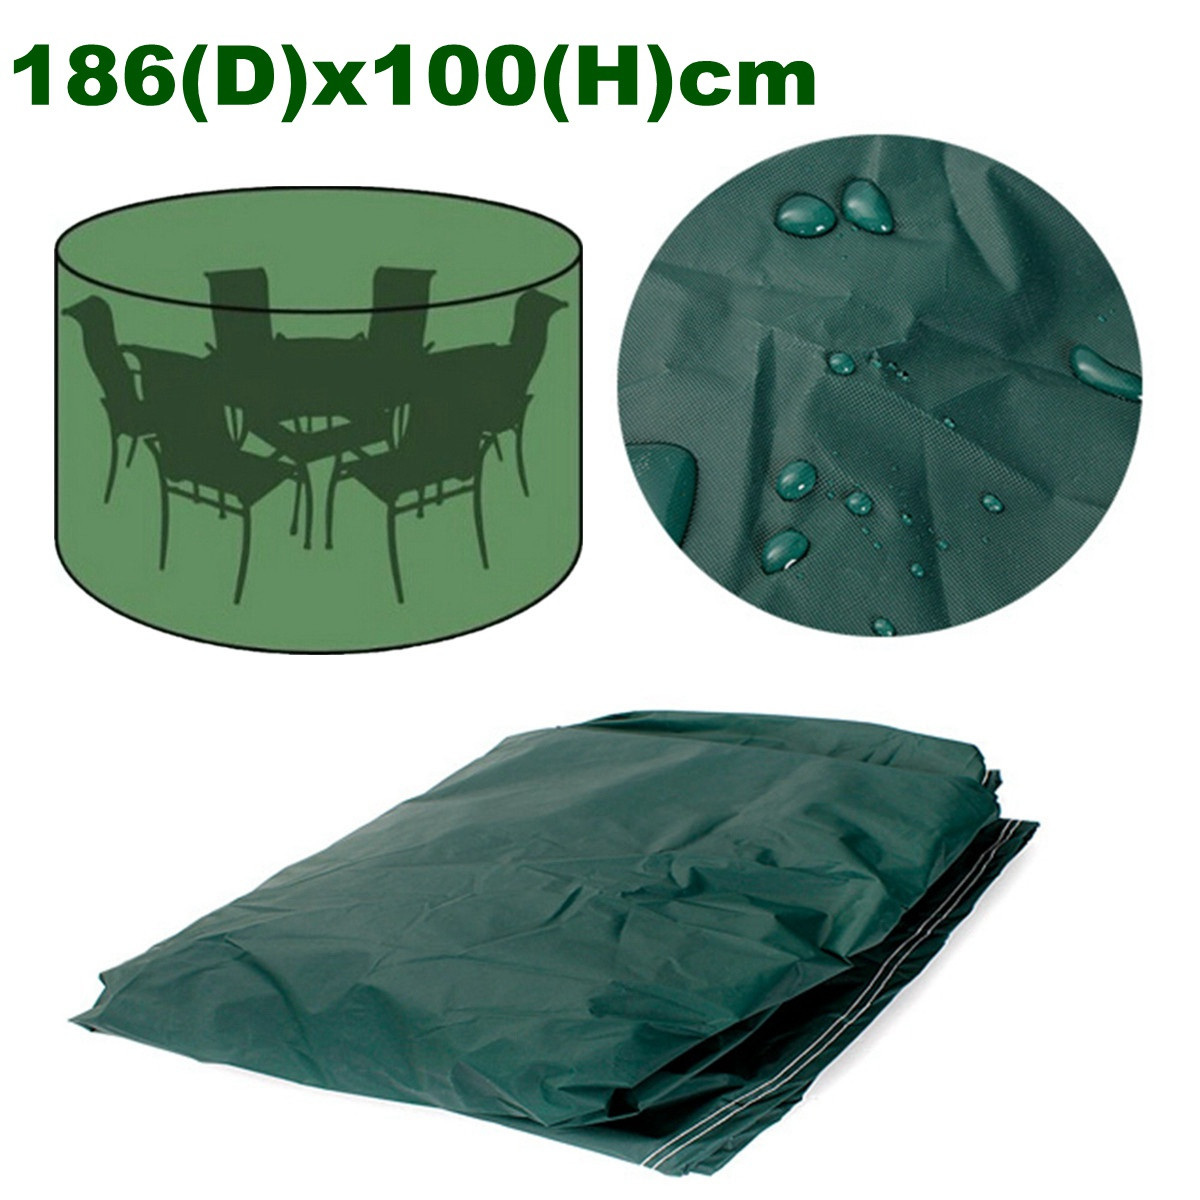 """Furniture Cover Round Outdoor Home Garden Protect Patio Table Chair Green 73"""" x 39"""" Polyethylene Waterproof Sun Rain Snow UV Resistant"""